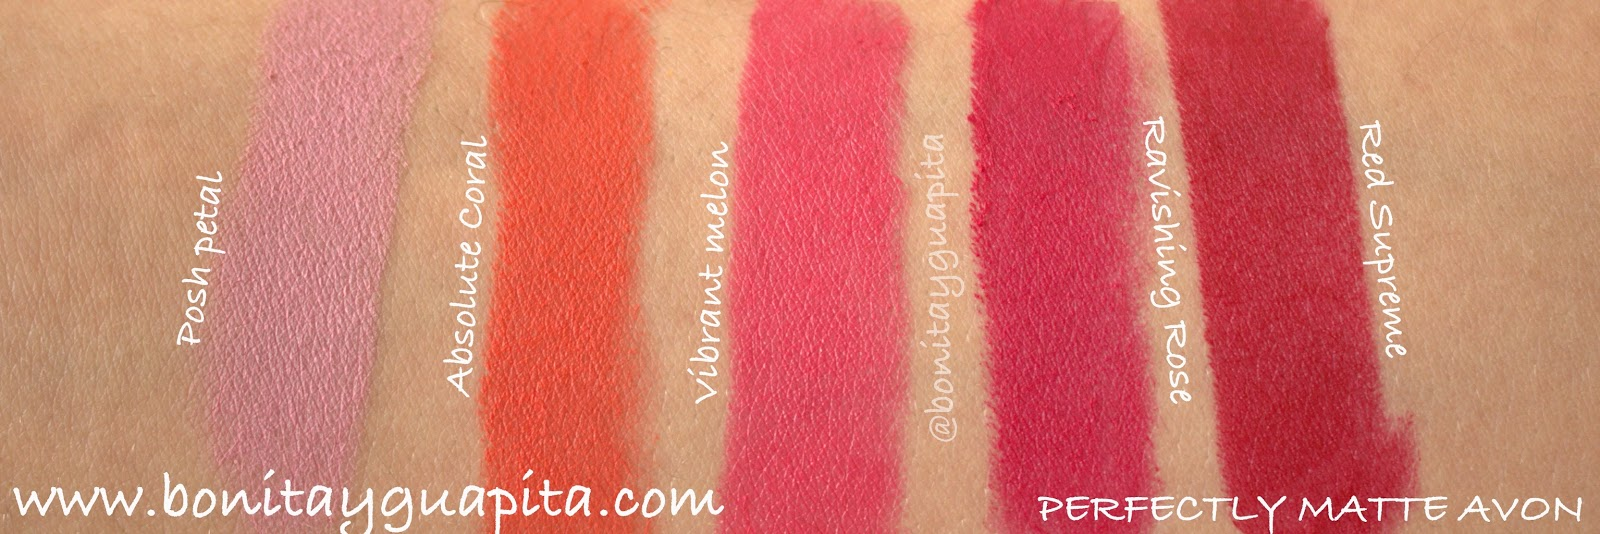 swatches perfectly matte avon